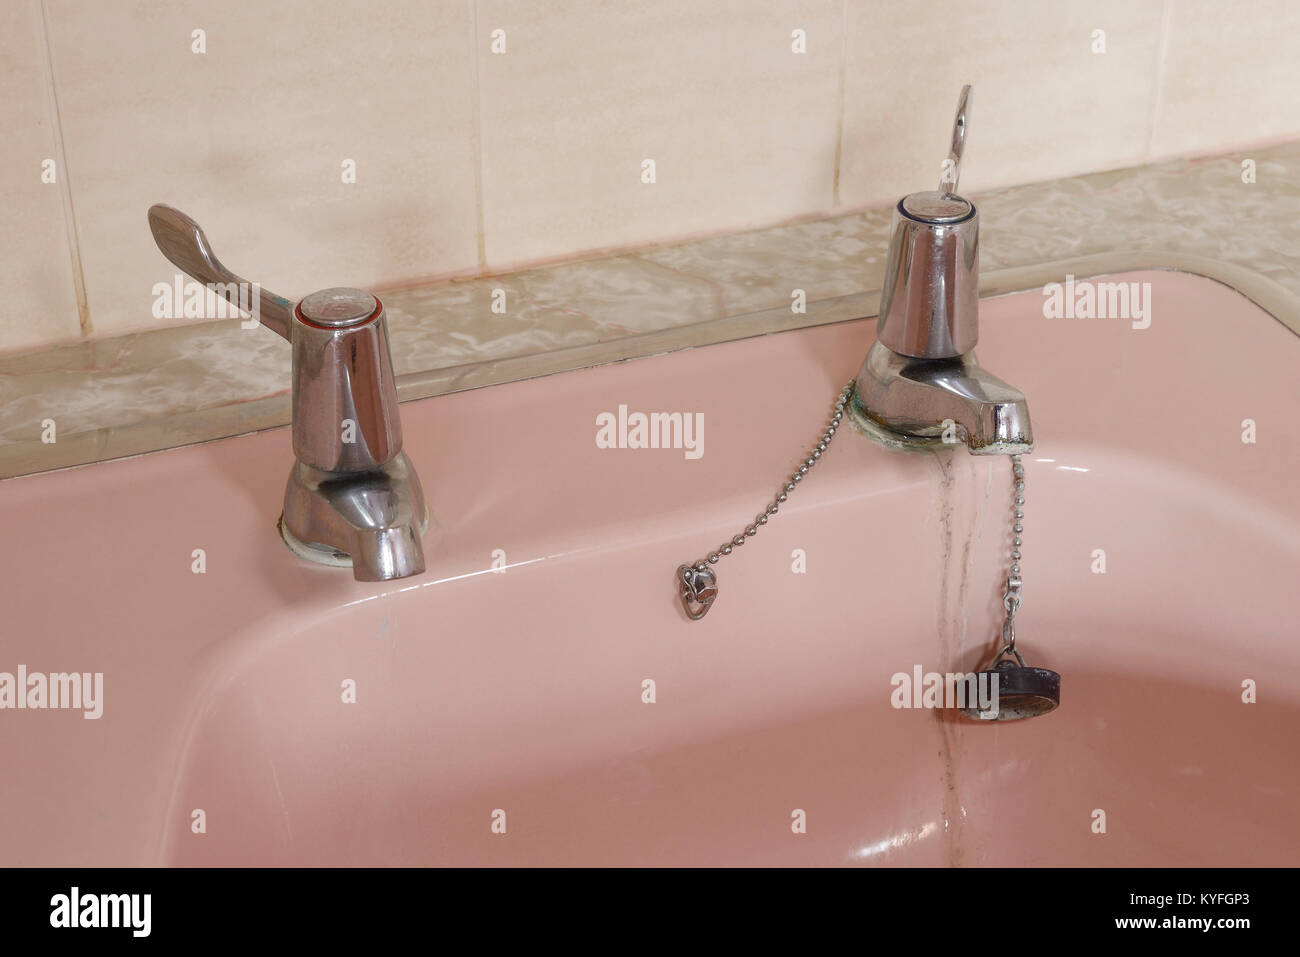 Close up detail of a domestic vanity unit hand basin in coral pink ceramic with silver taps with levers - Stock Image